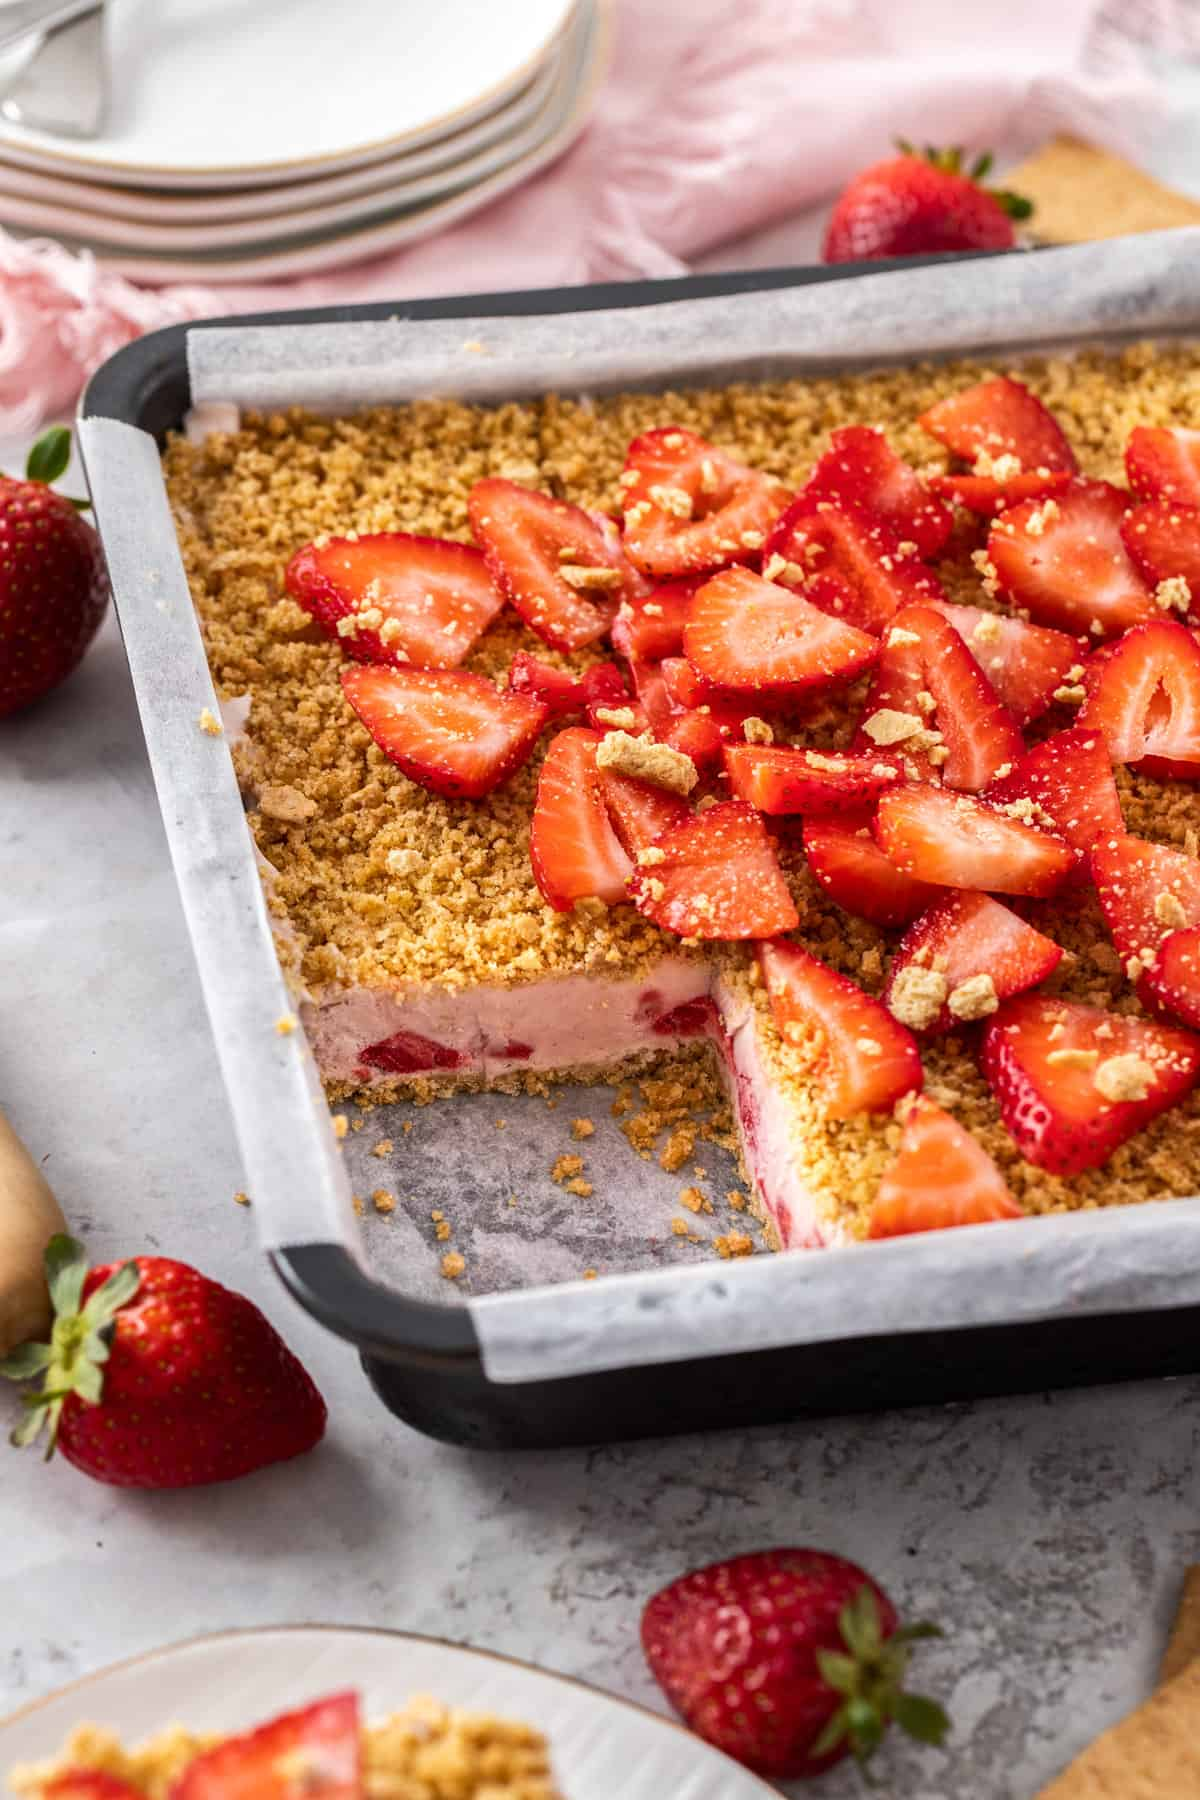 strawberry dessert in pan with square serving cut out